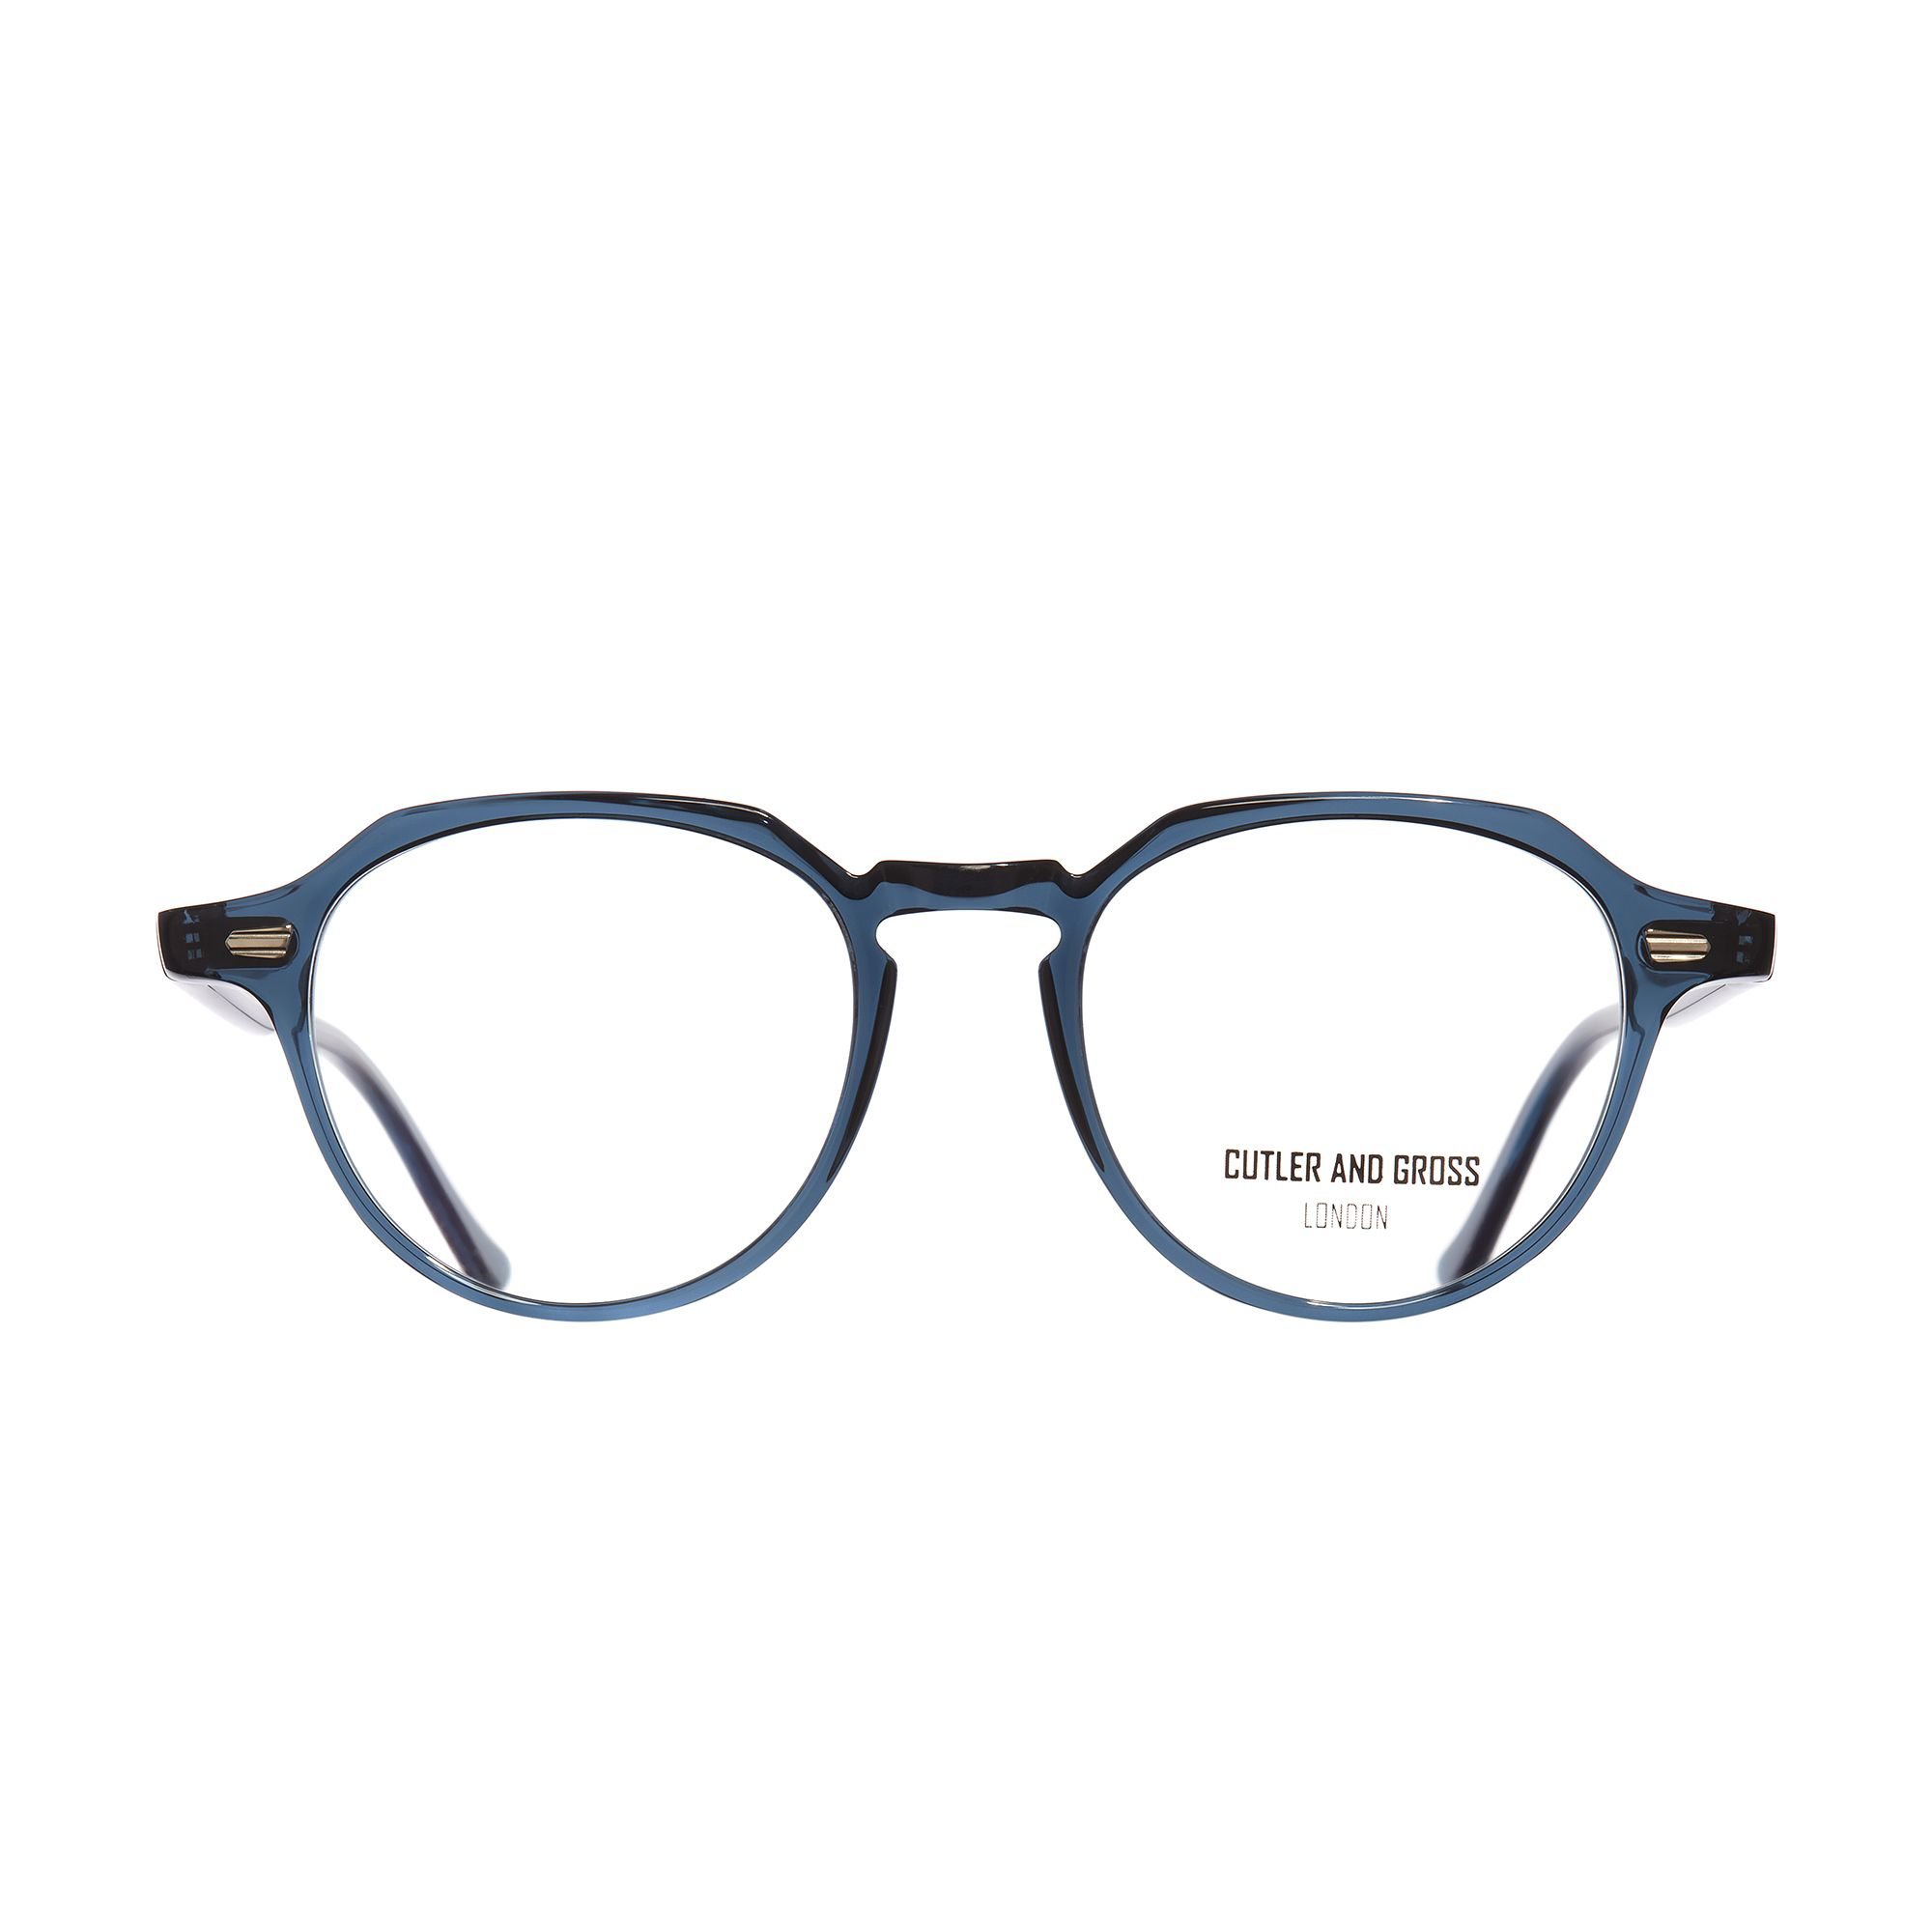 1313v2 04 Ocean Blue Optical Glasses Glasses Shop Optical